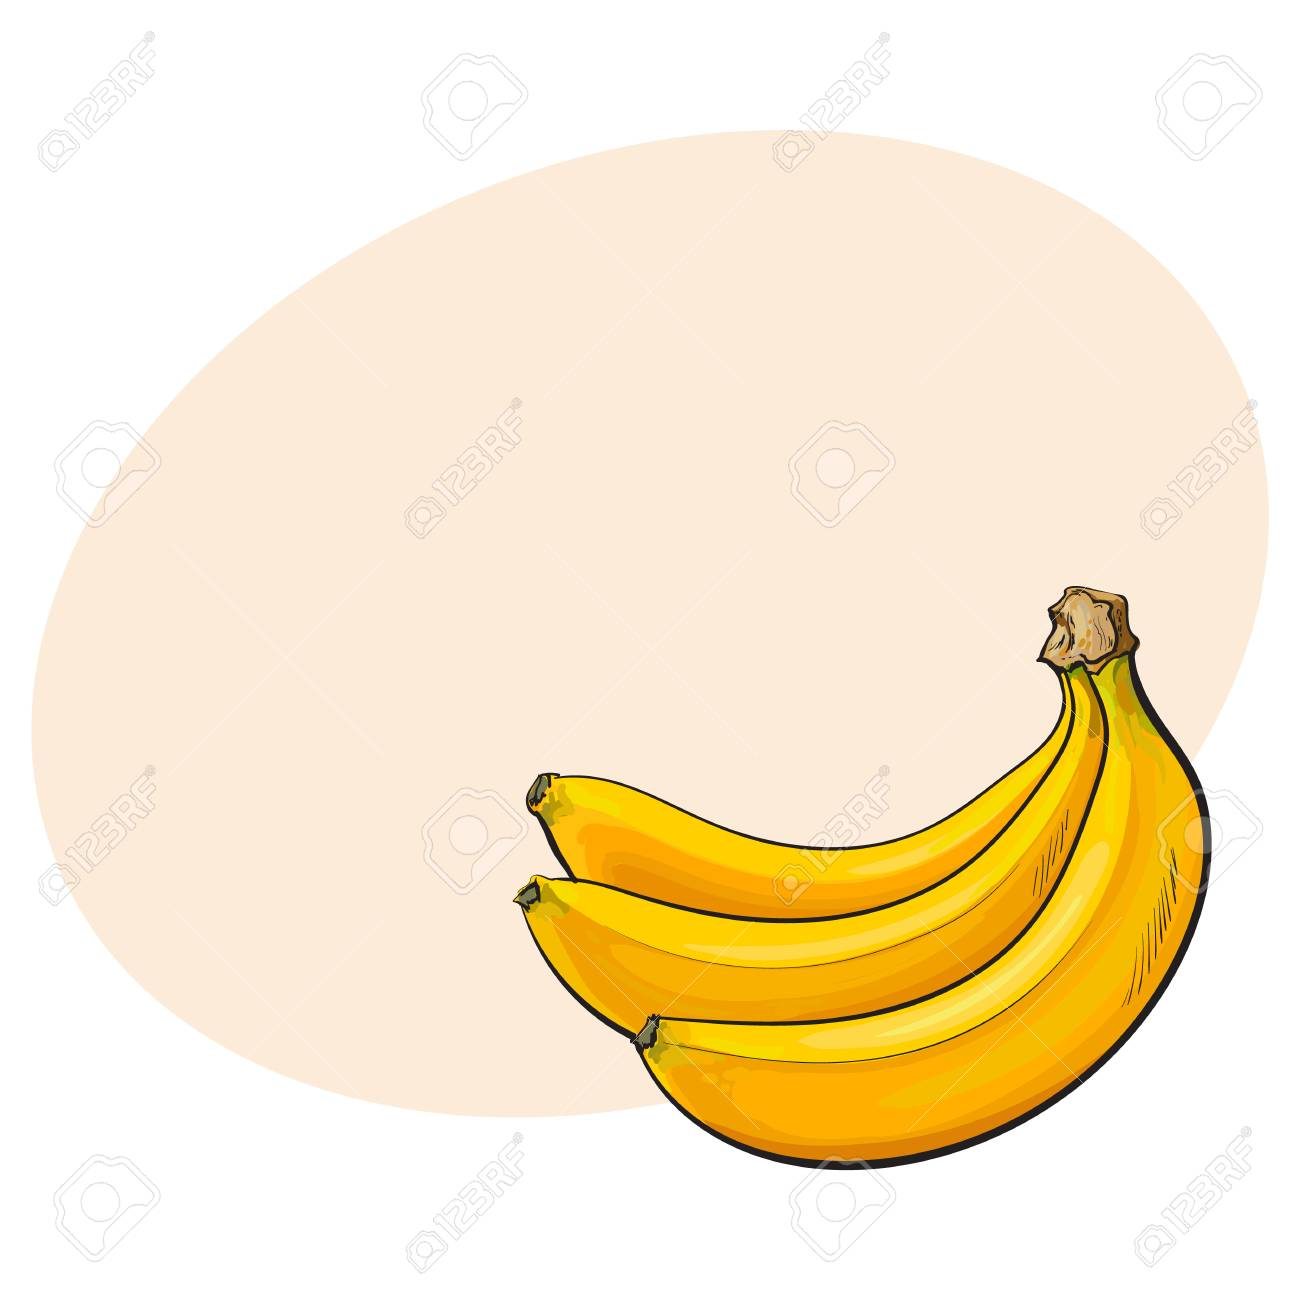 Bunch Of Three Unopened Unpeeled Ripe Bananas Sketch Style Vector Illustration Isolated With Place